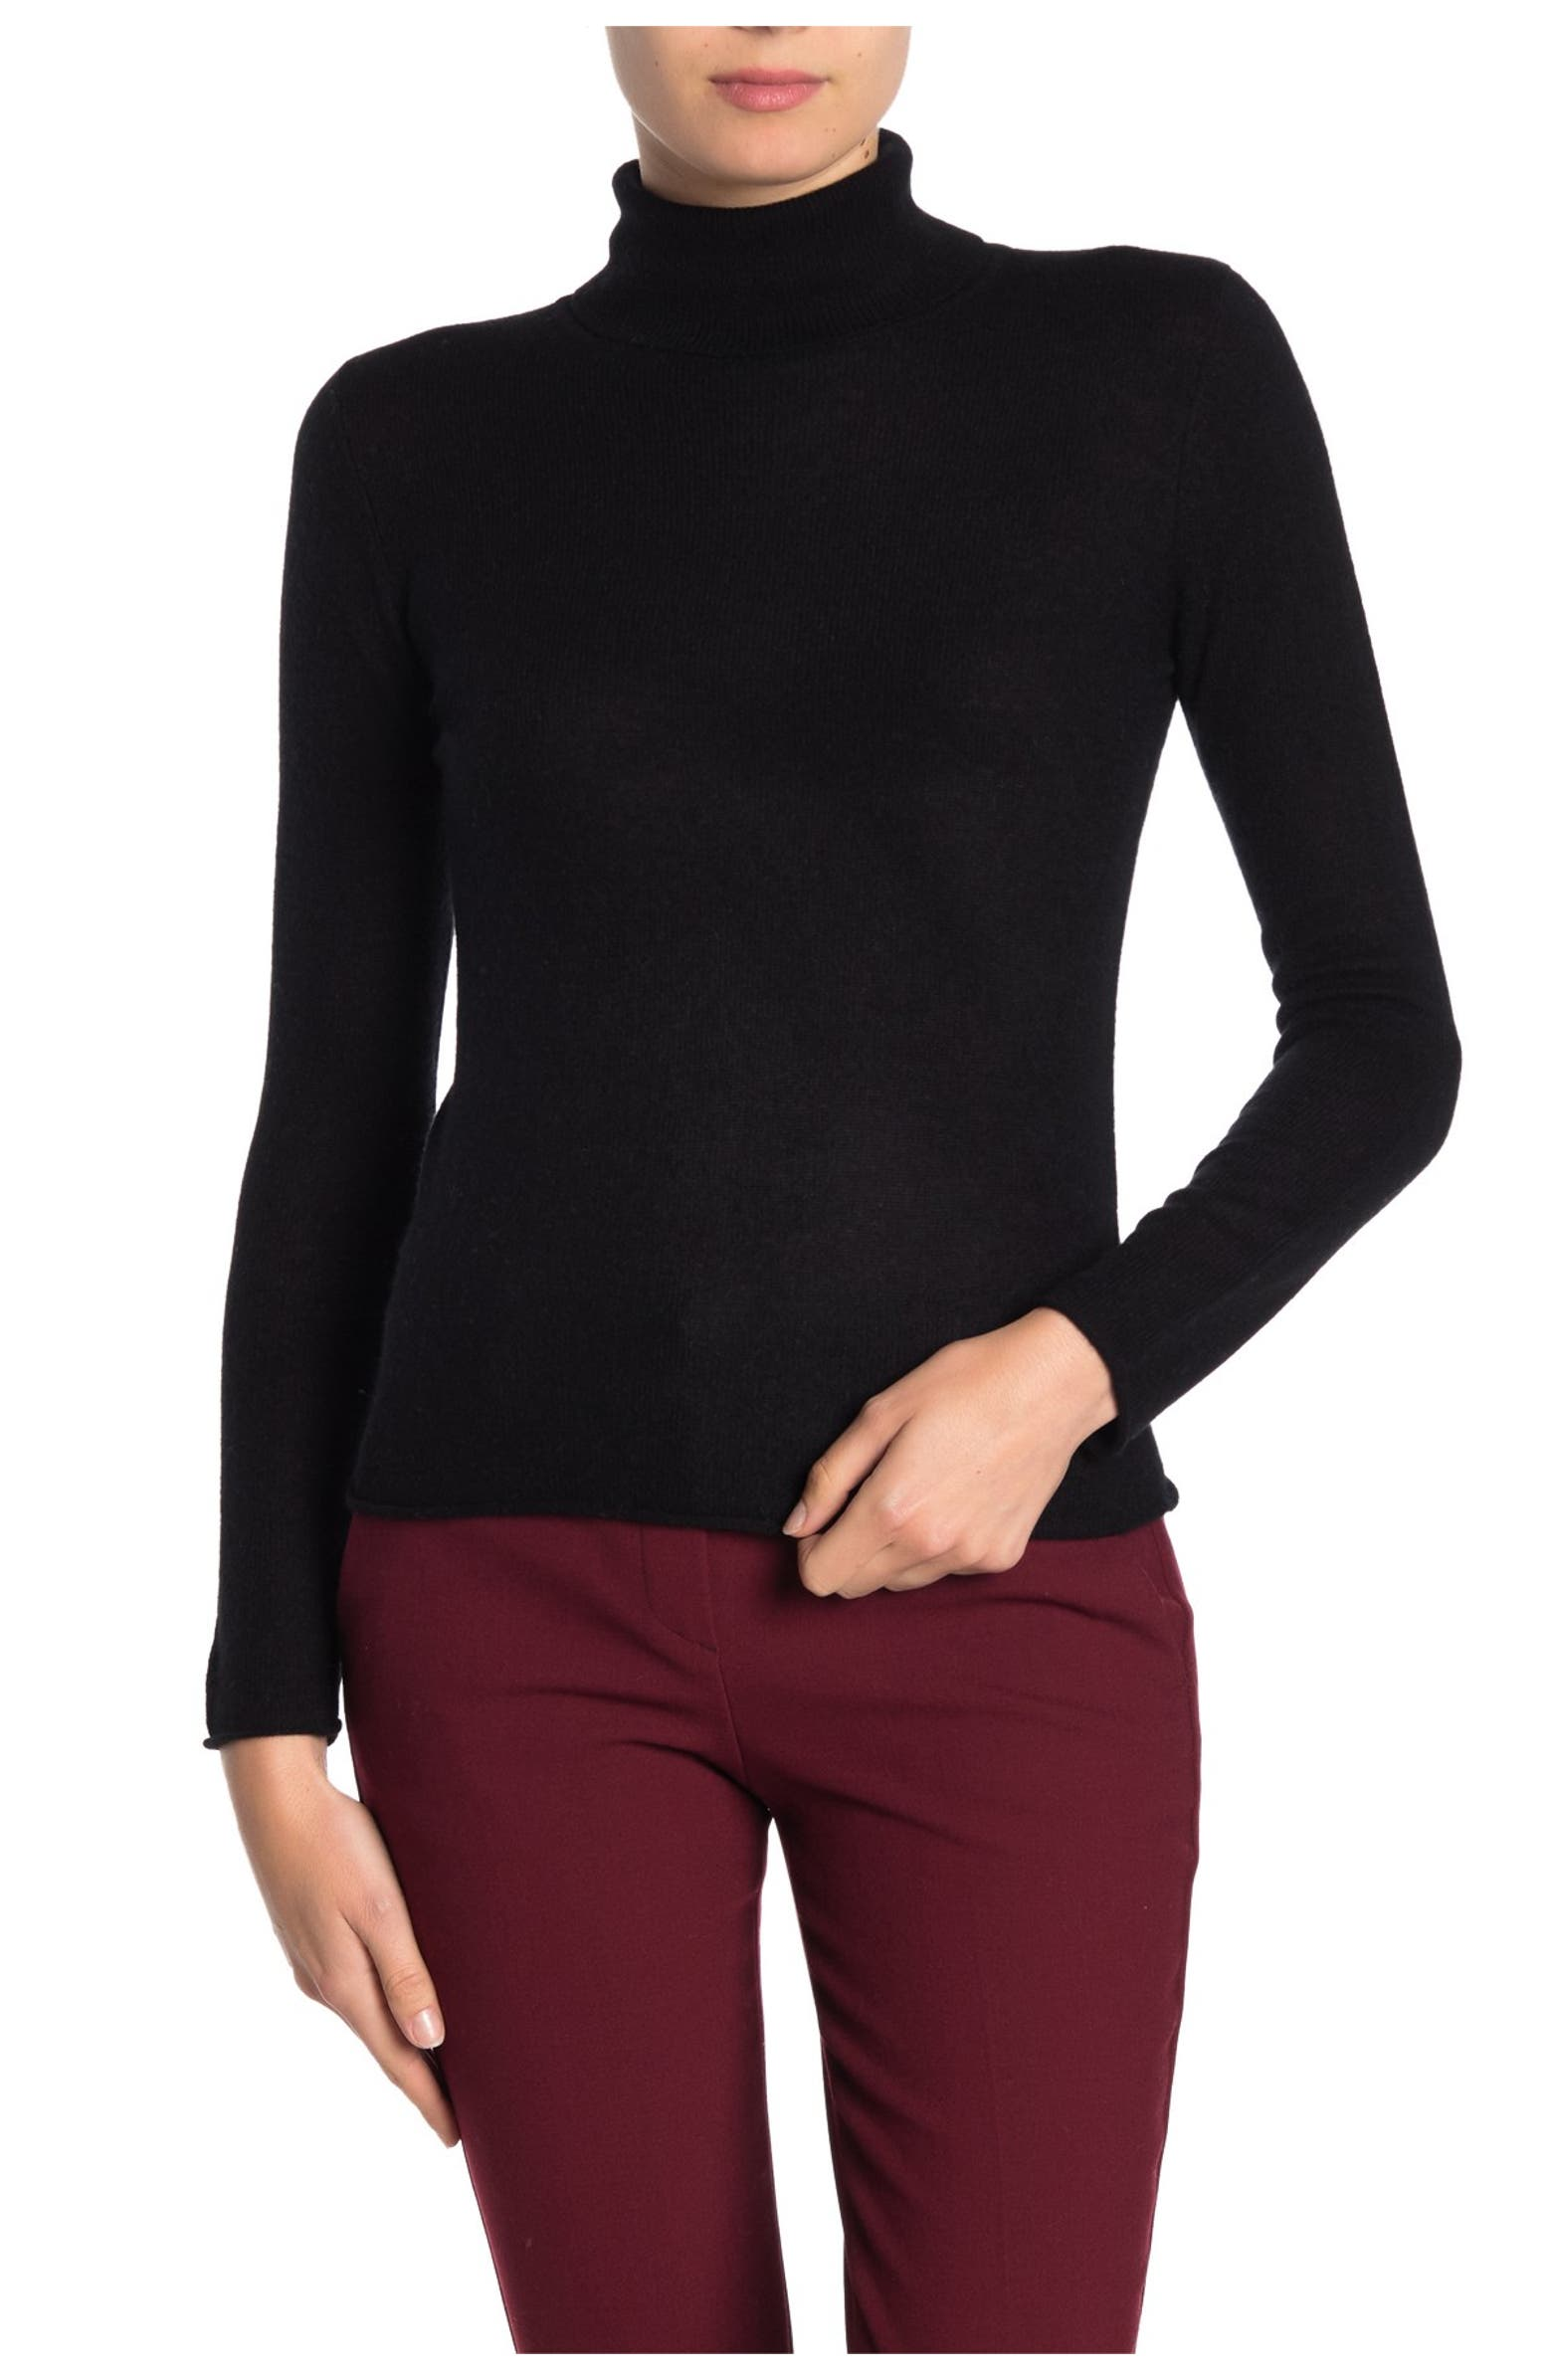 Nordstrom: Cashmere Clothing & Accessories Up to 65% Off